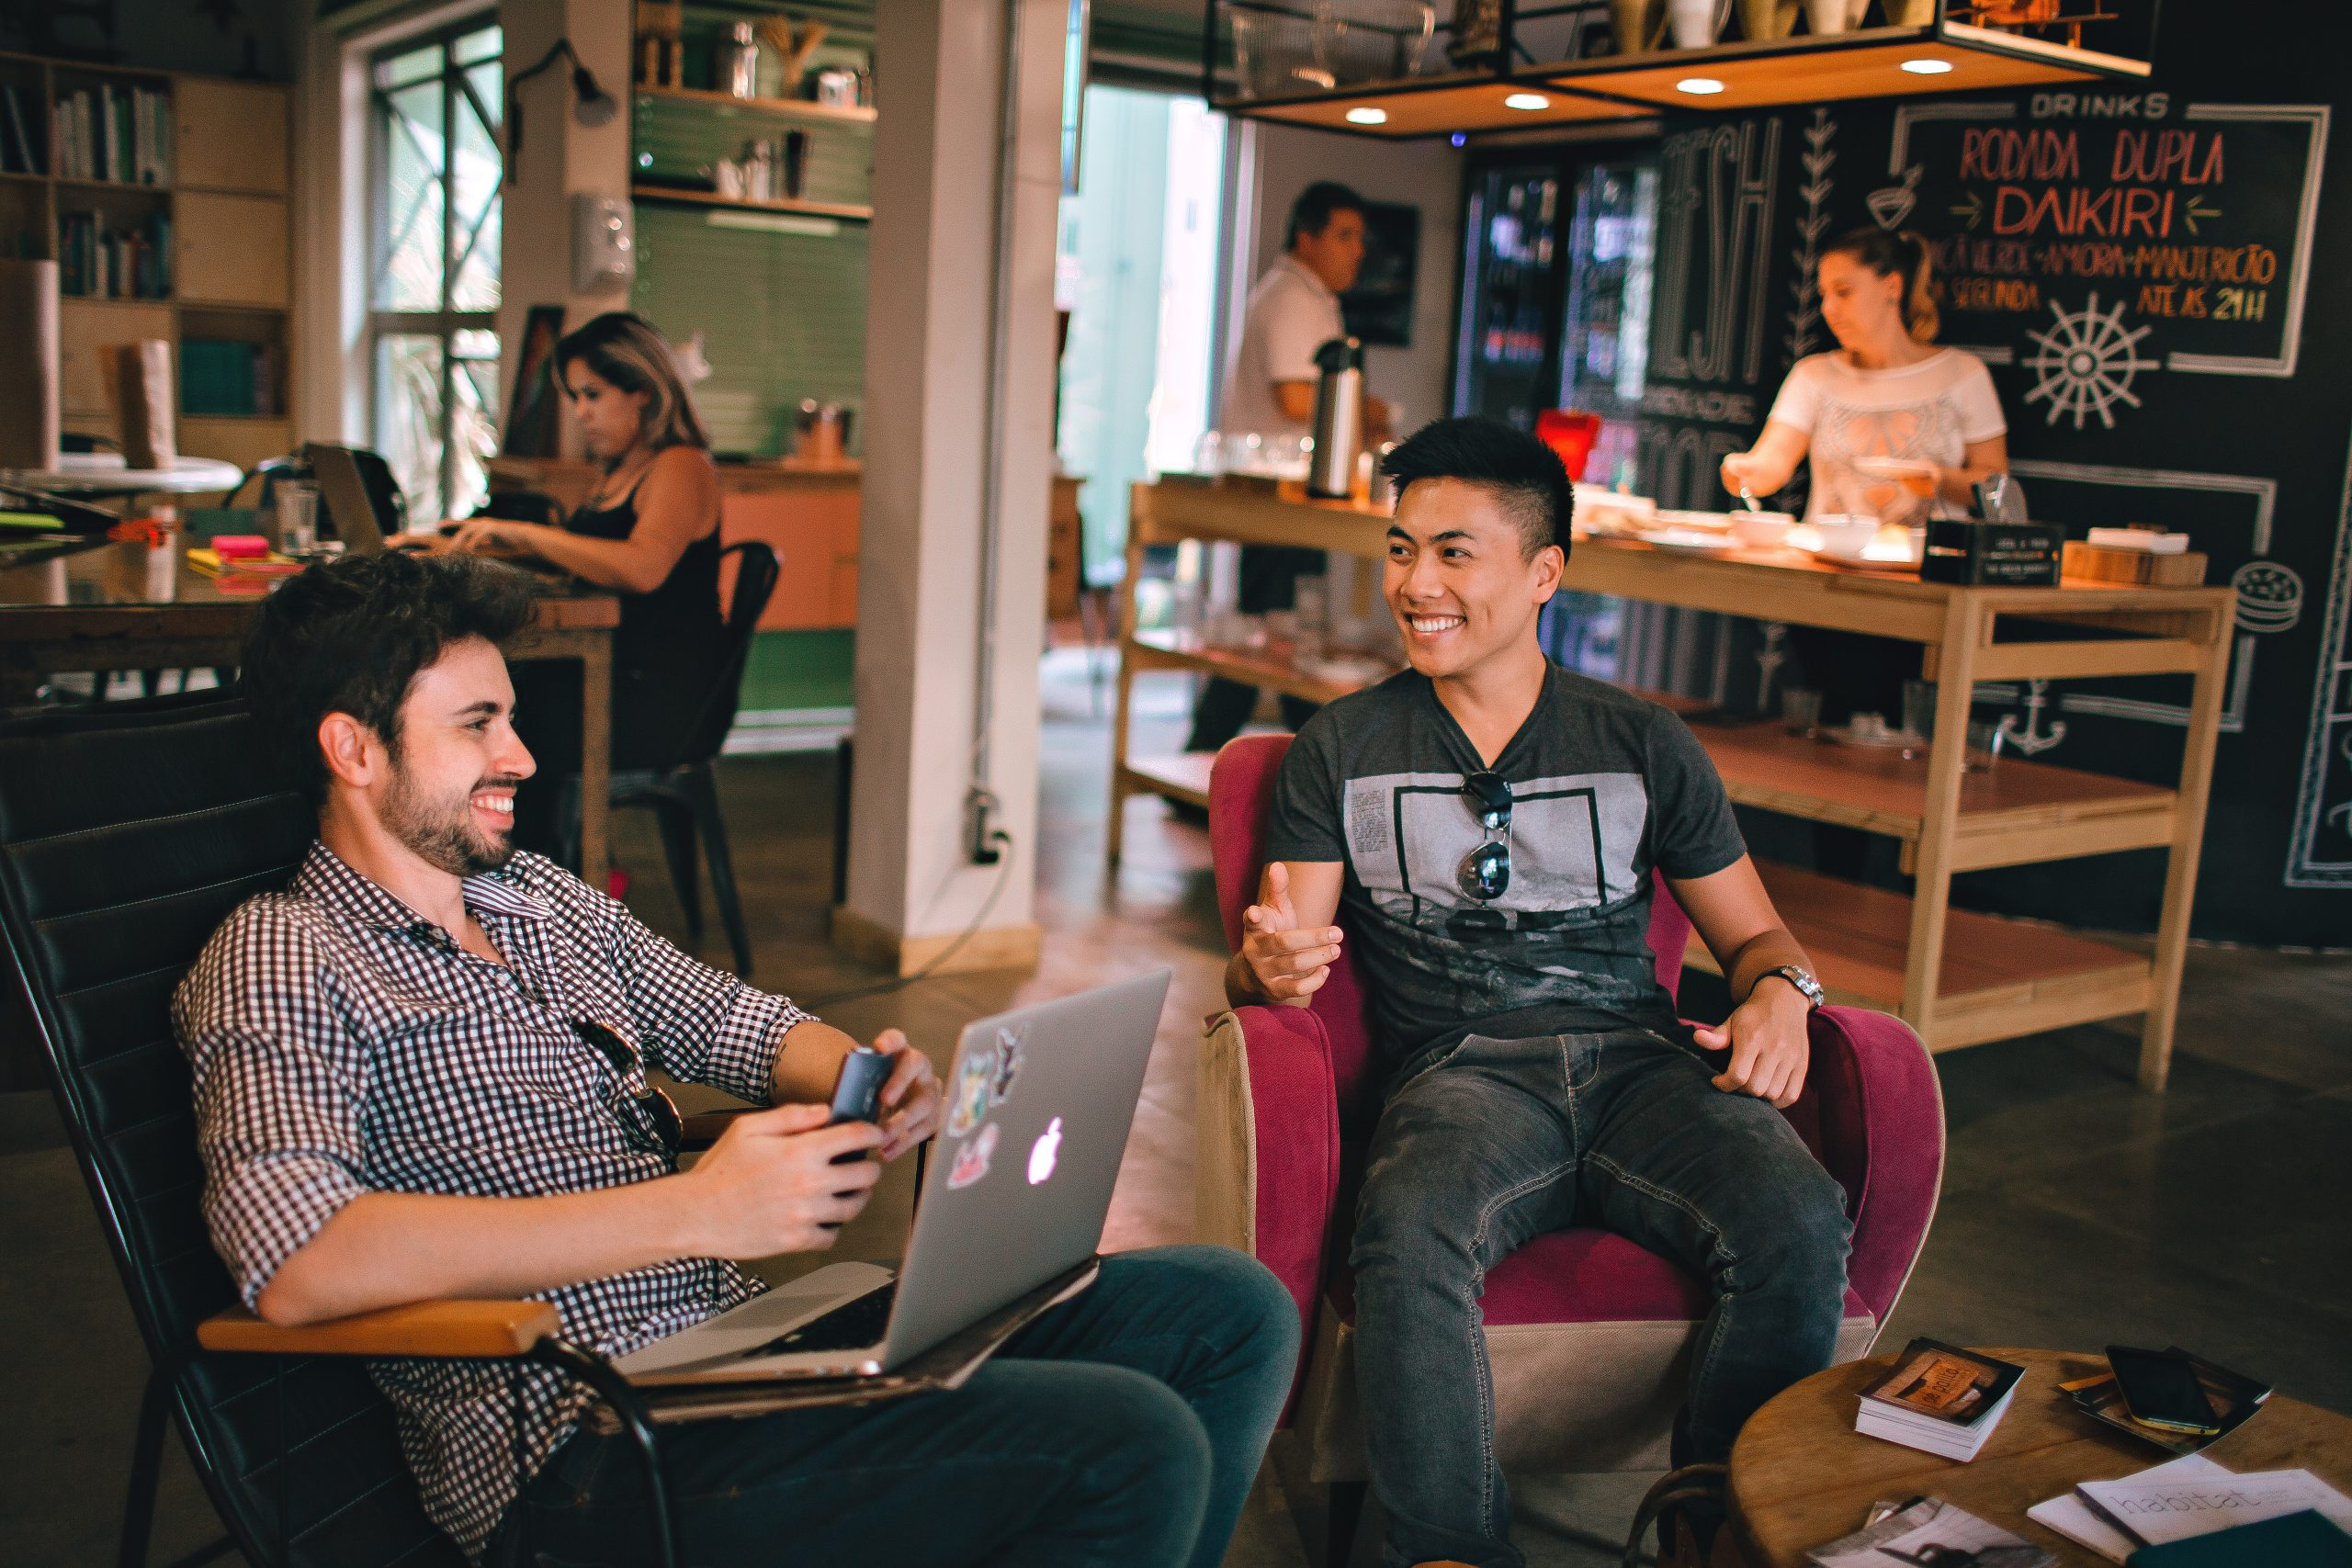 Co-working spaces are on the rise and are popular with start-ups